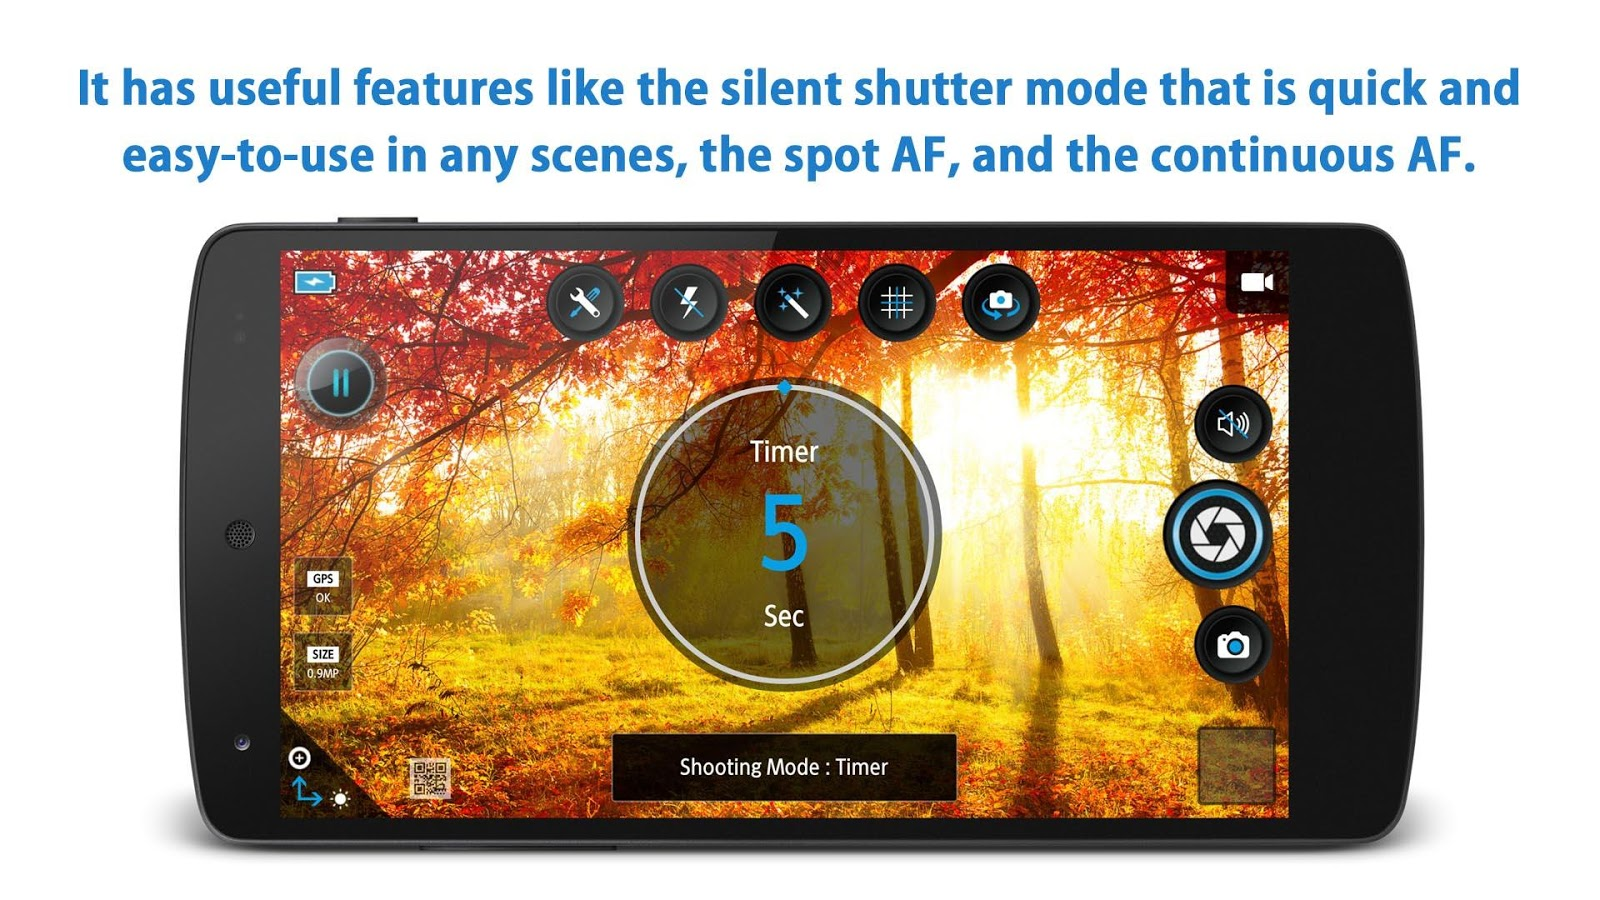 HD Camera Pro - silent shutter Screenshot 6